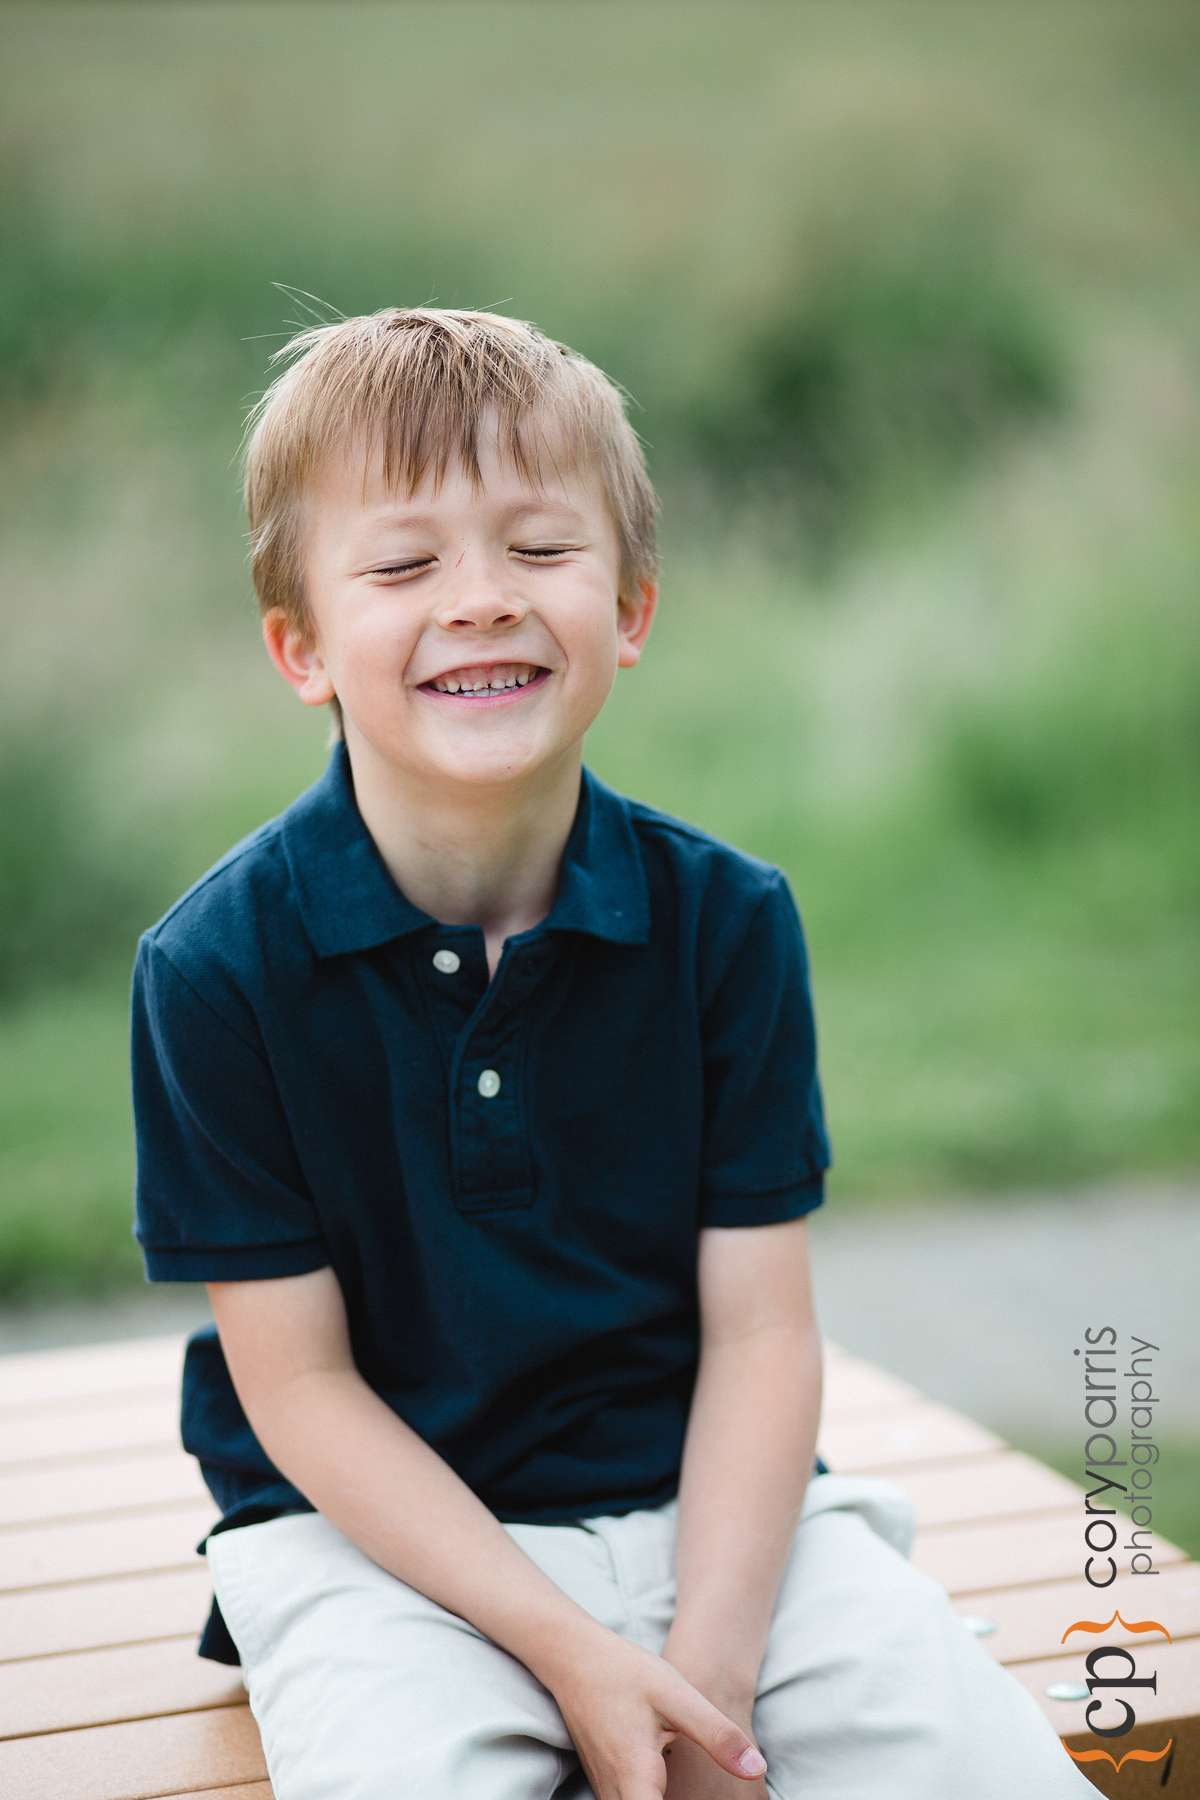 I love photos of kids laughing!